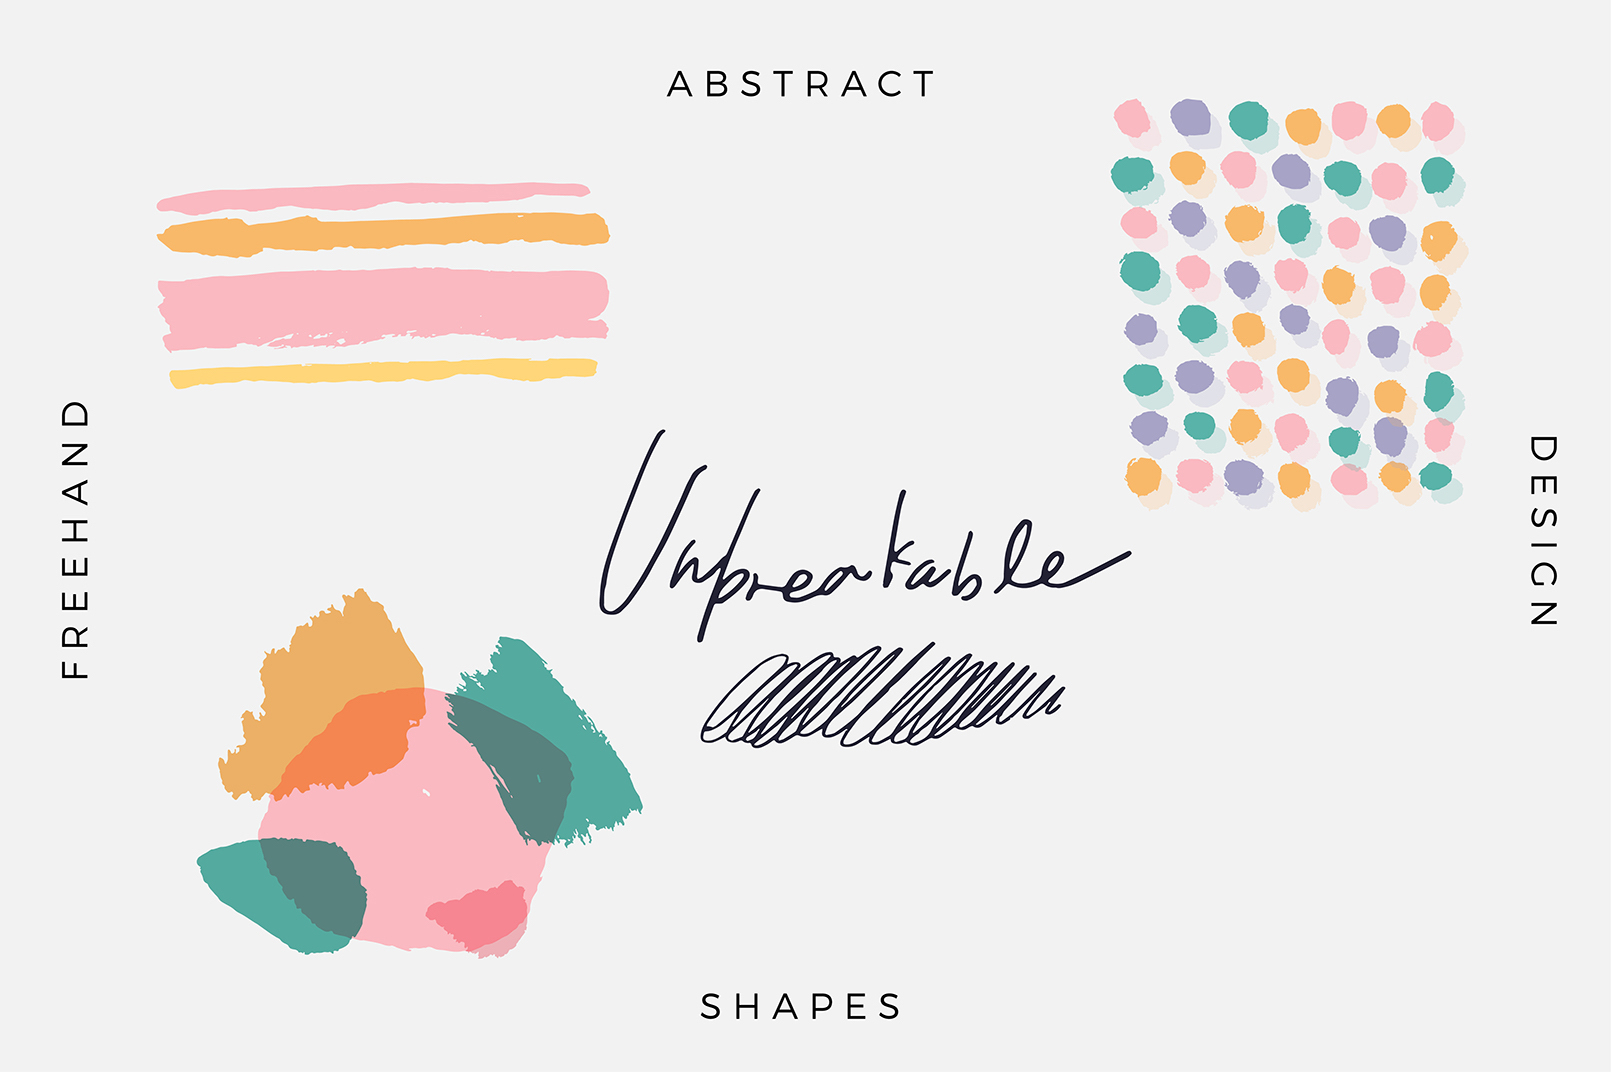 Unbreakable - Free, Abstract, Design example image 1